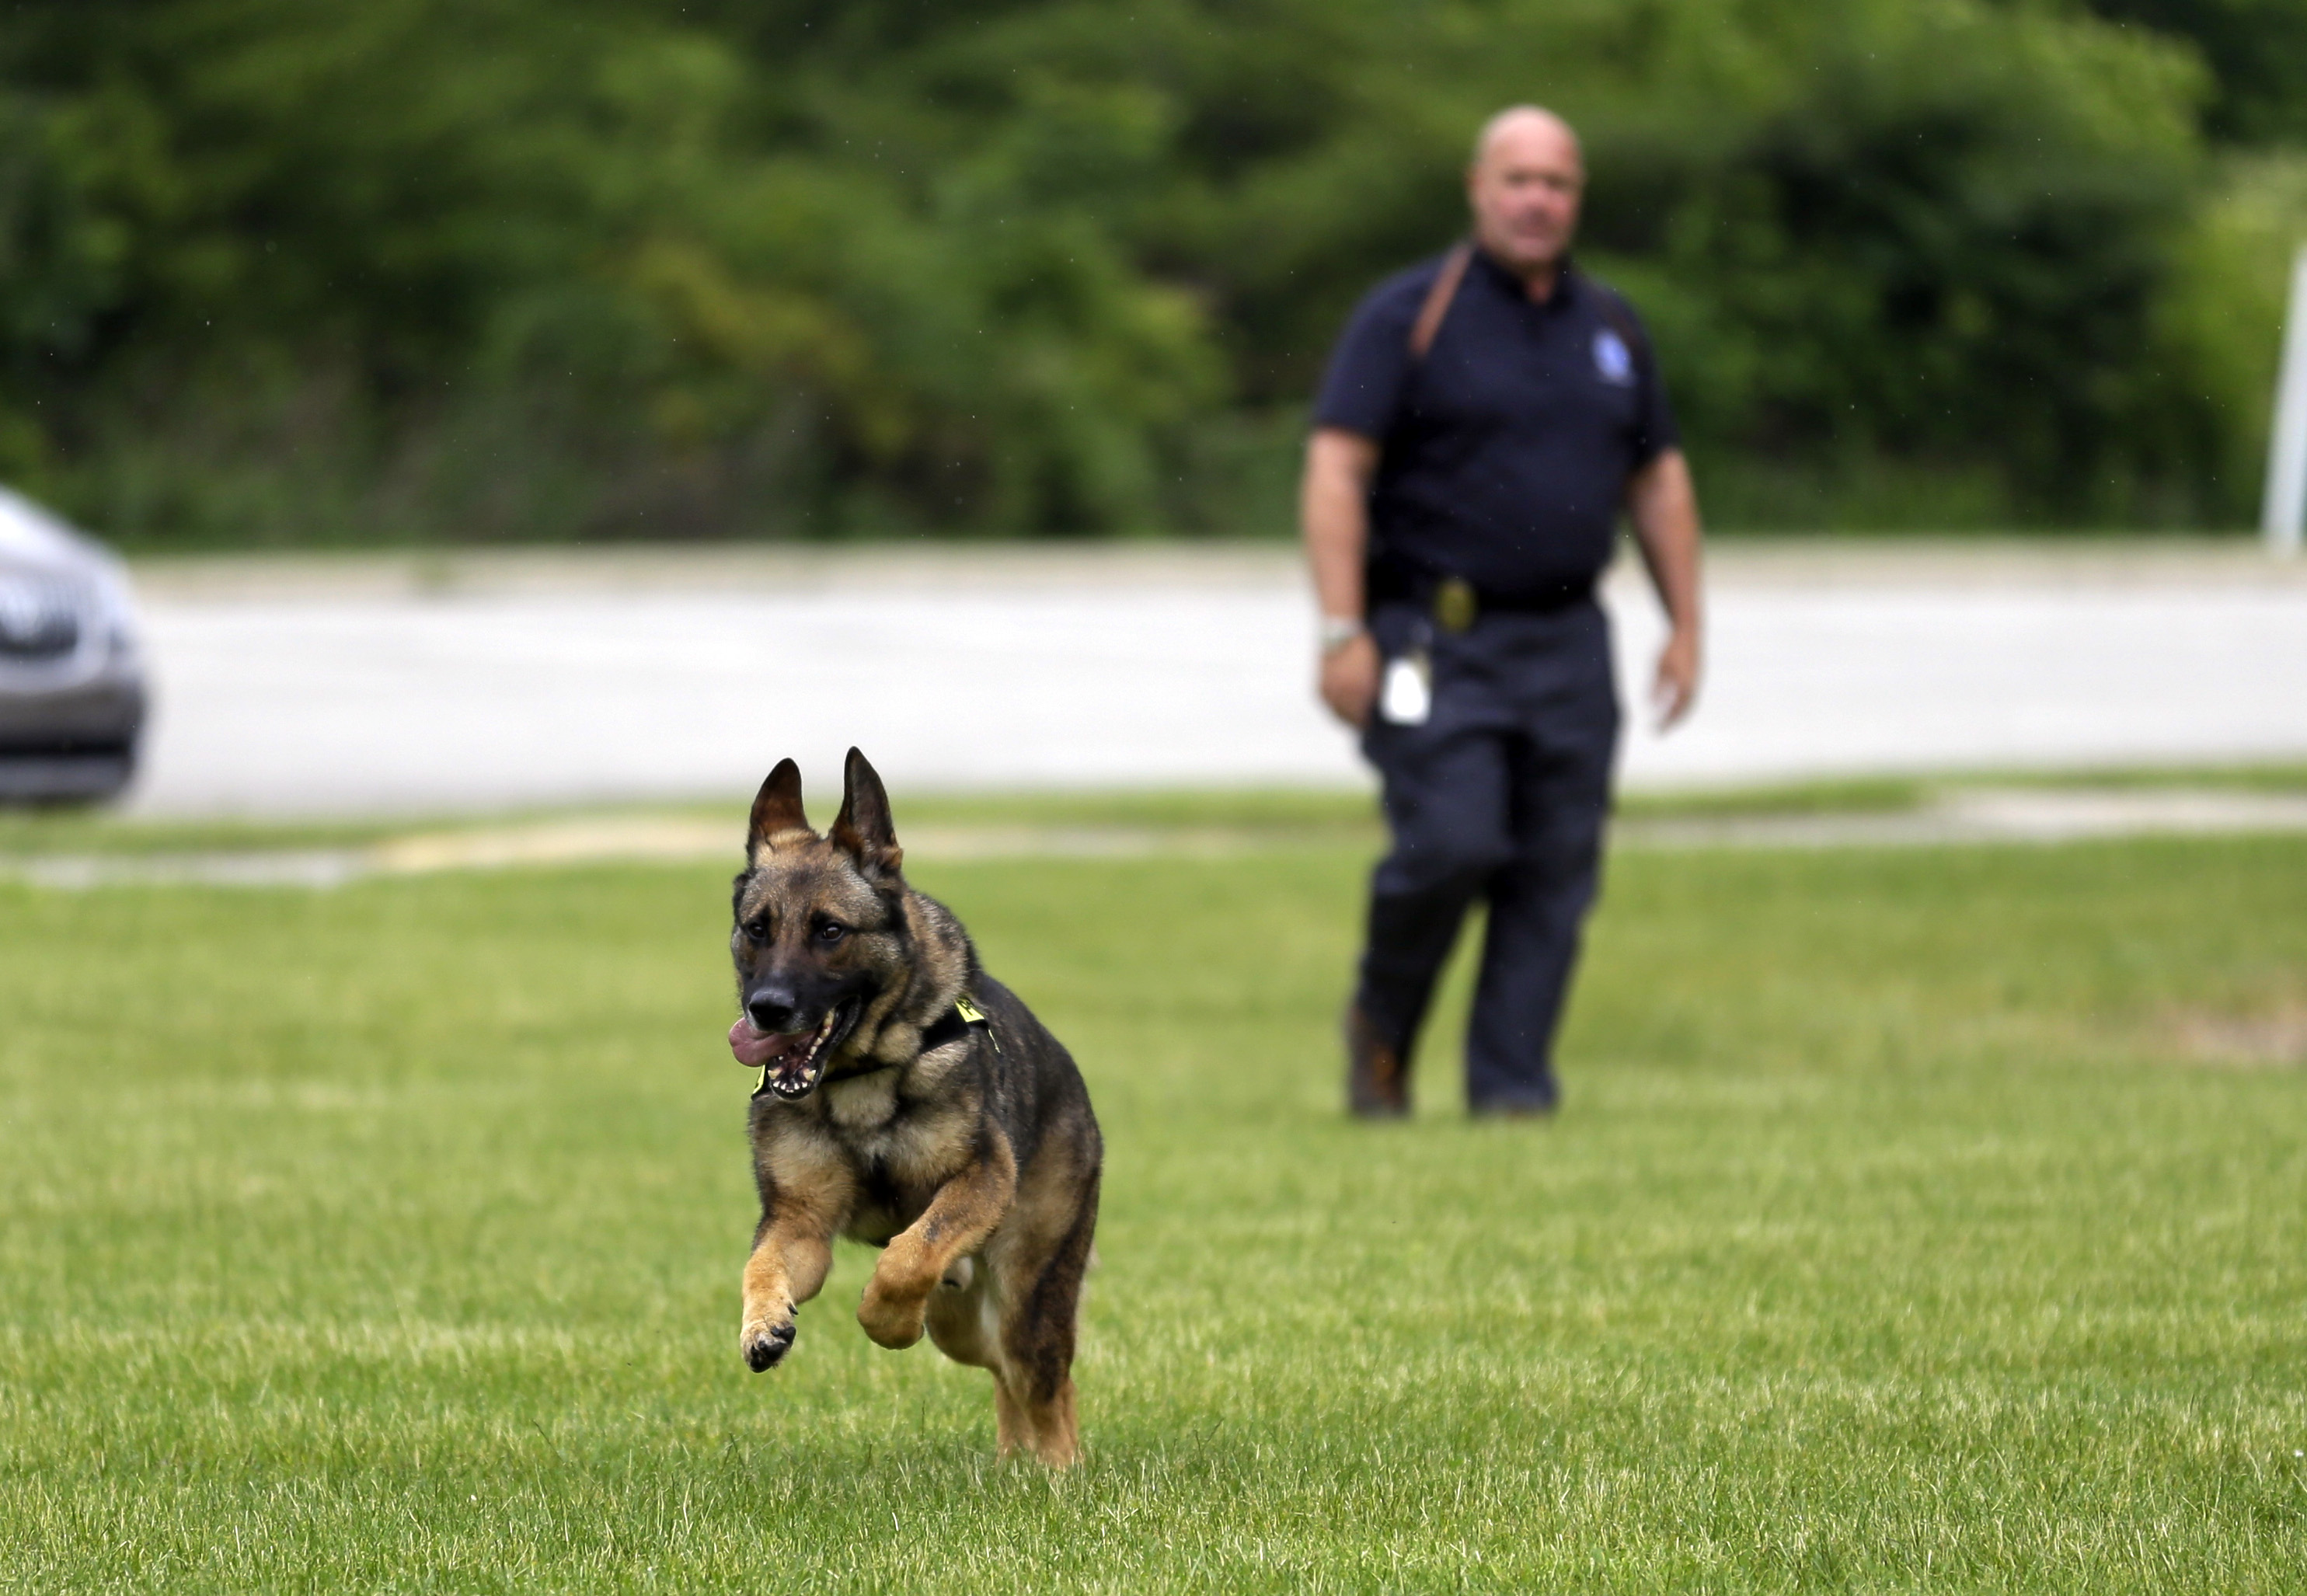 CORRECTS SPELLING OF NAME TO AXEL, NOT AXLE - In this photo taken June 1, 2015, Lawrence Police Department Officer Matthew Hickey watches as his dog Axel performs a search drill at a school in Indianapolis. Axel, a 5-year-old German shepherd that spent three years in Afghanistan as a search and narcotics dog, will spend the rest of his working career in Indianapolis, where he's been assigned to the Lawrence Township School District police force. (AP Photo/Michael Conroy)